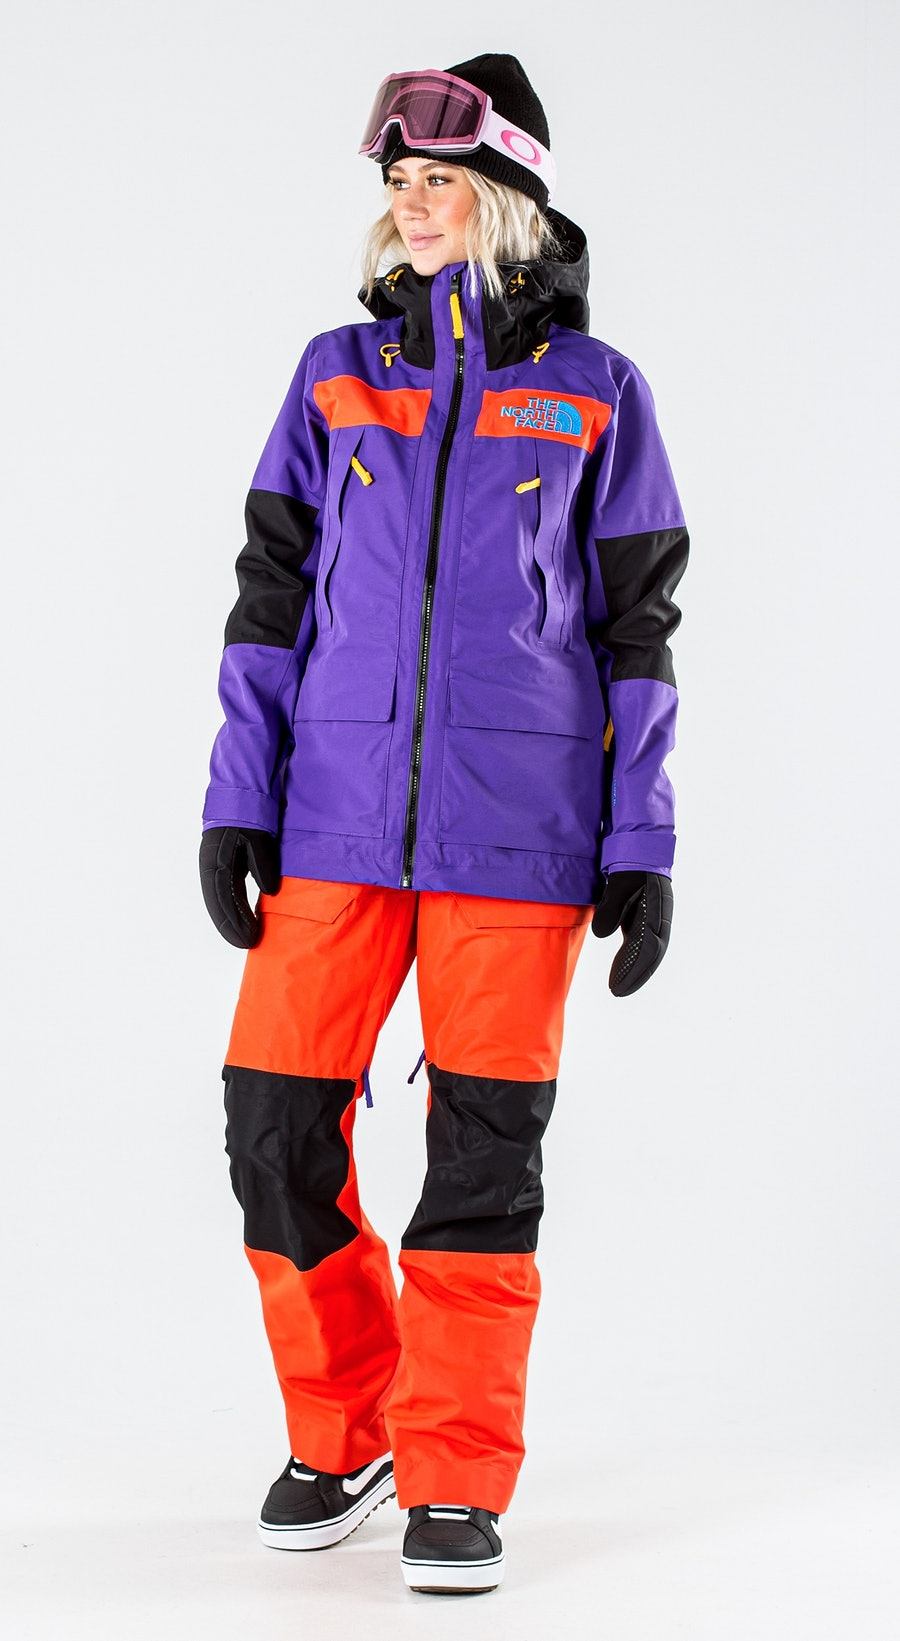 The North Face Team Kit Peak Purple/Flare/Tnf Blk Snowboardkläder Multi